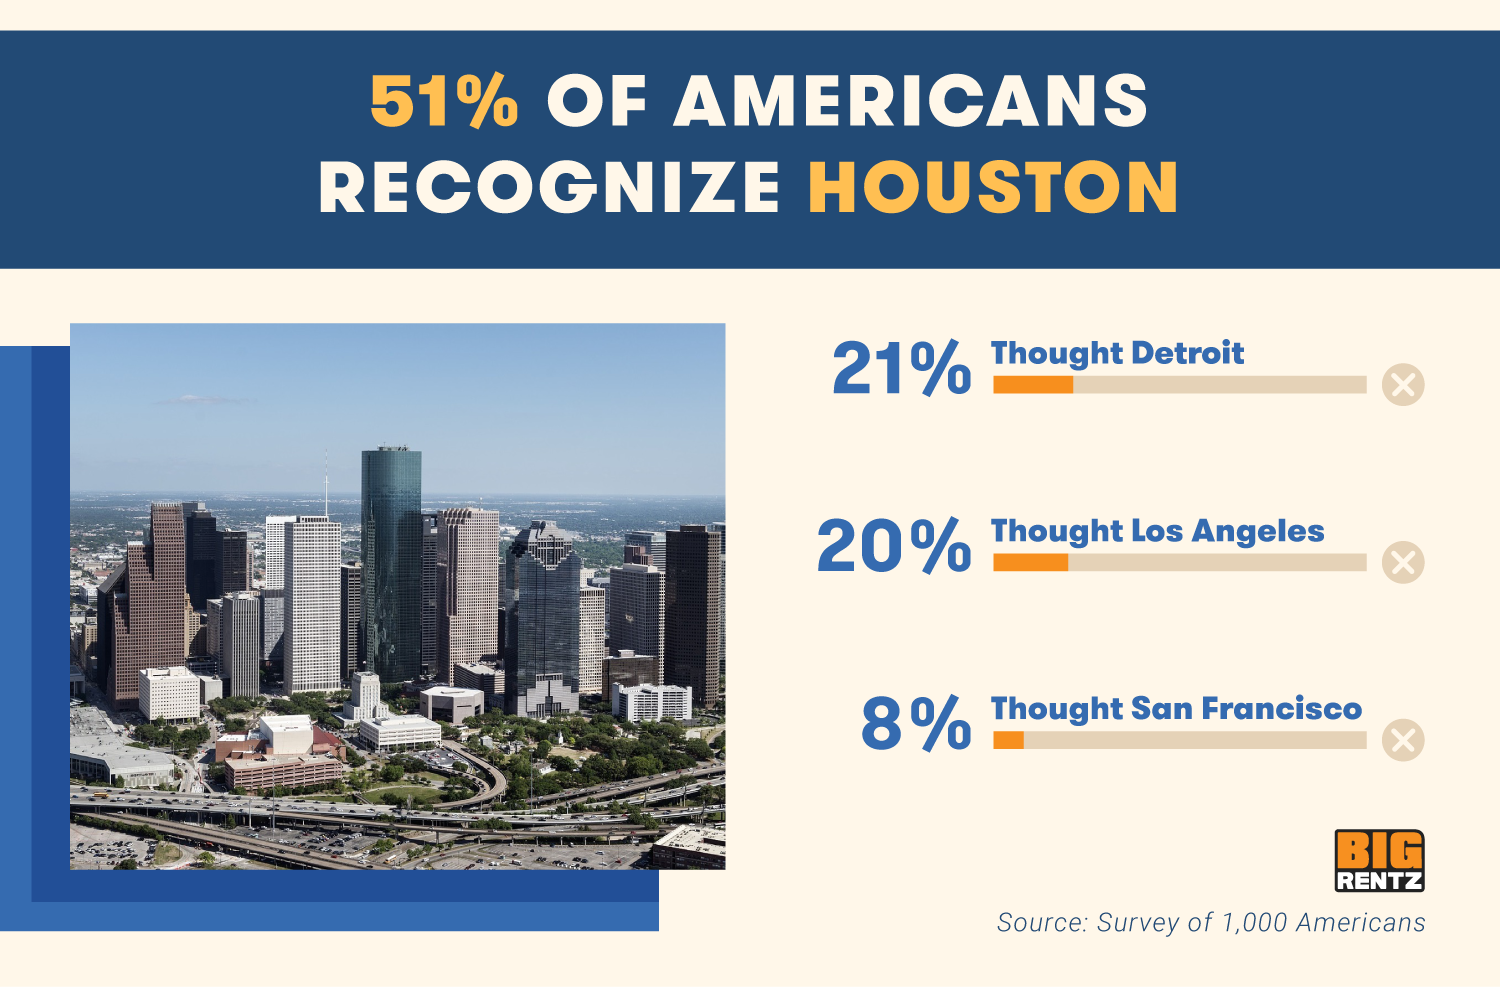 51% of Americans recognize Houston. 21% thought Detriot, 20% thought Los Angeles, 8% thought San Francisco.